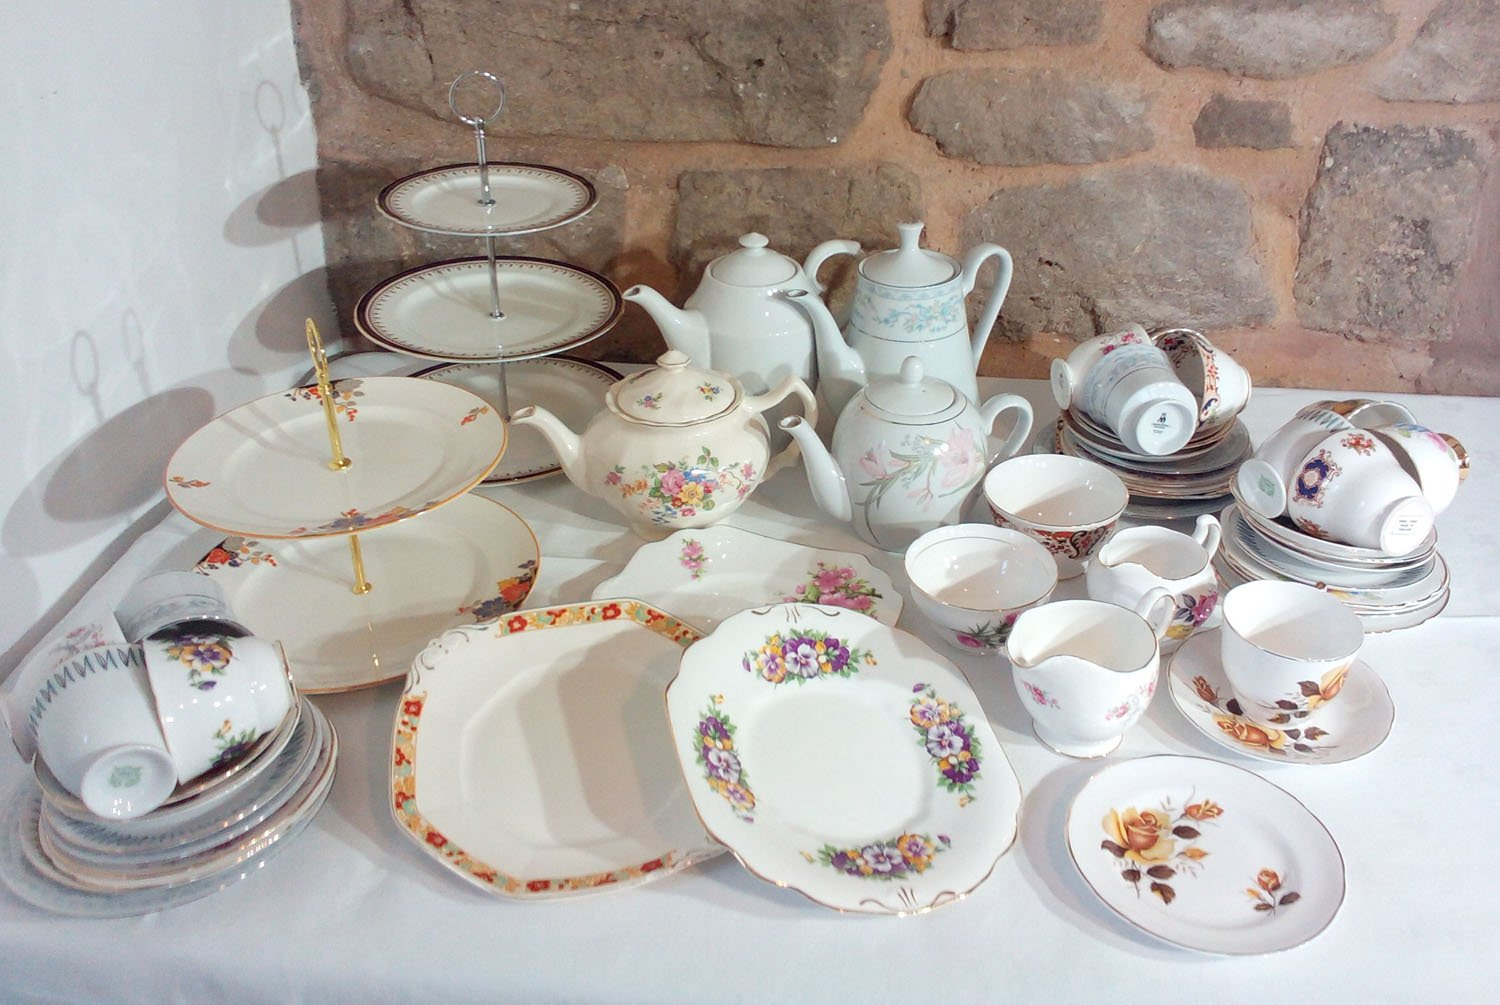 Vintage China Hire, Return Clean or Return Dirty Option